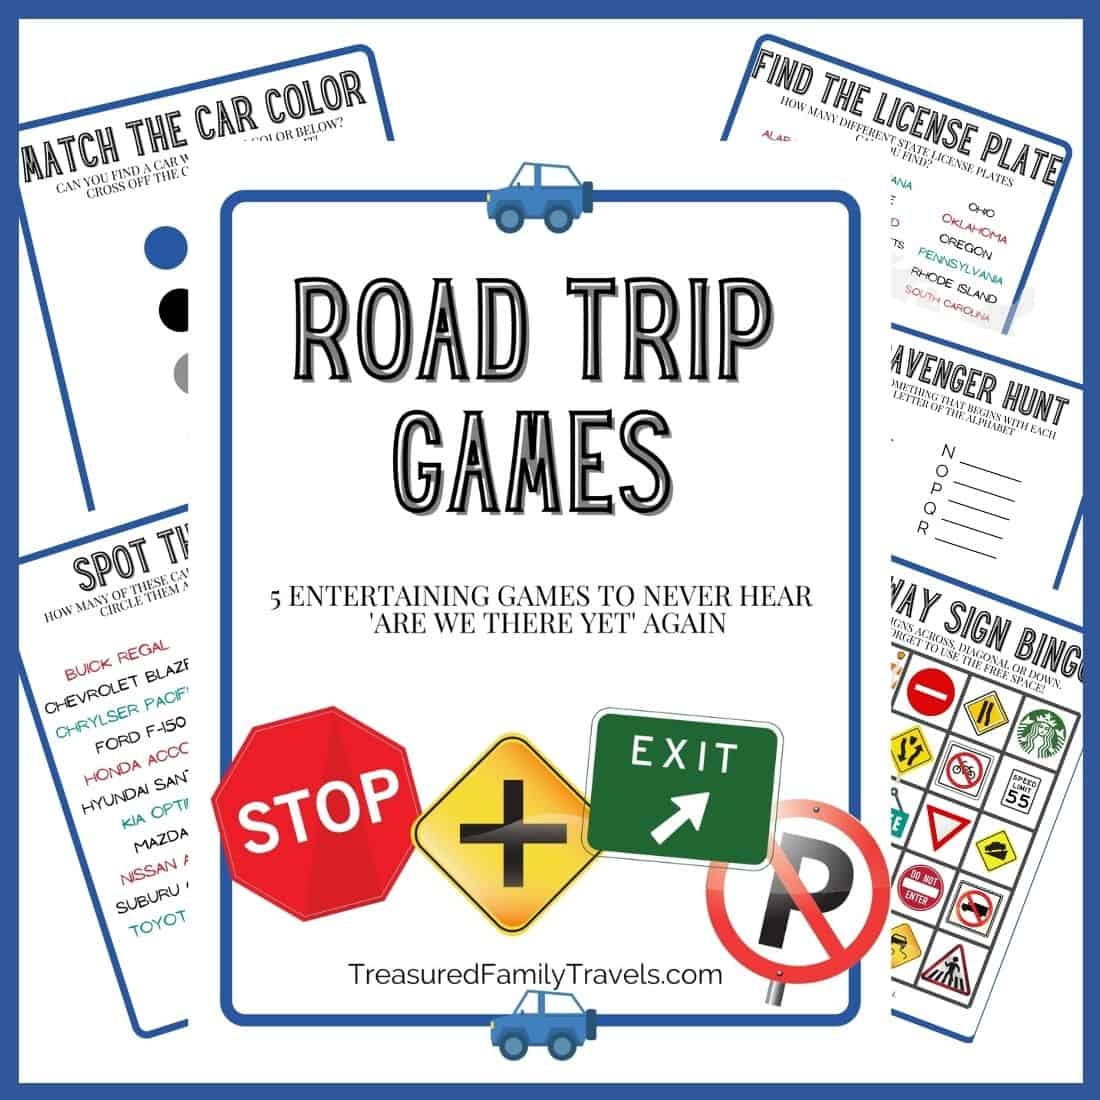 Printable games fanned out around a title page